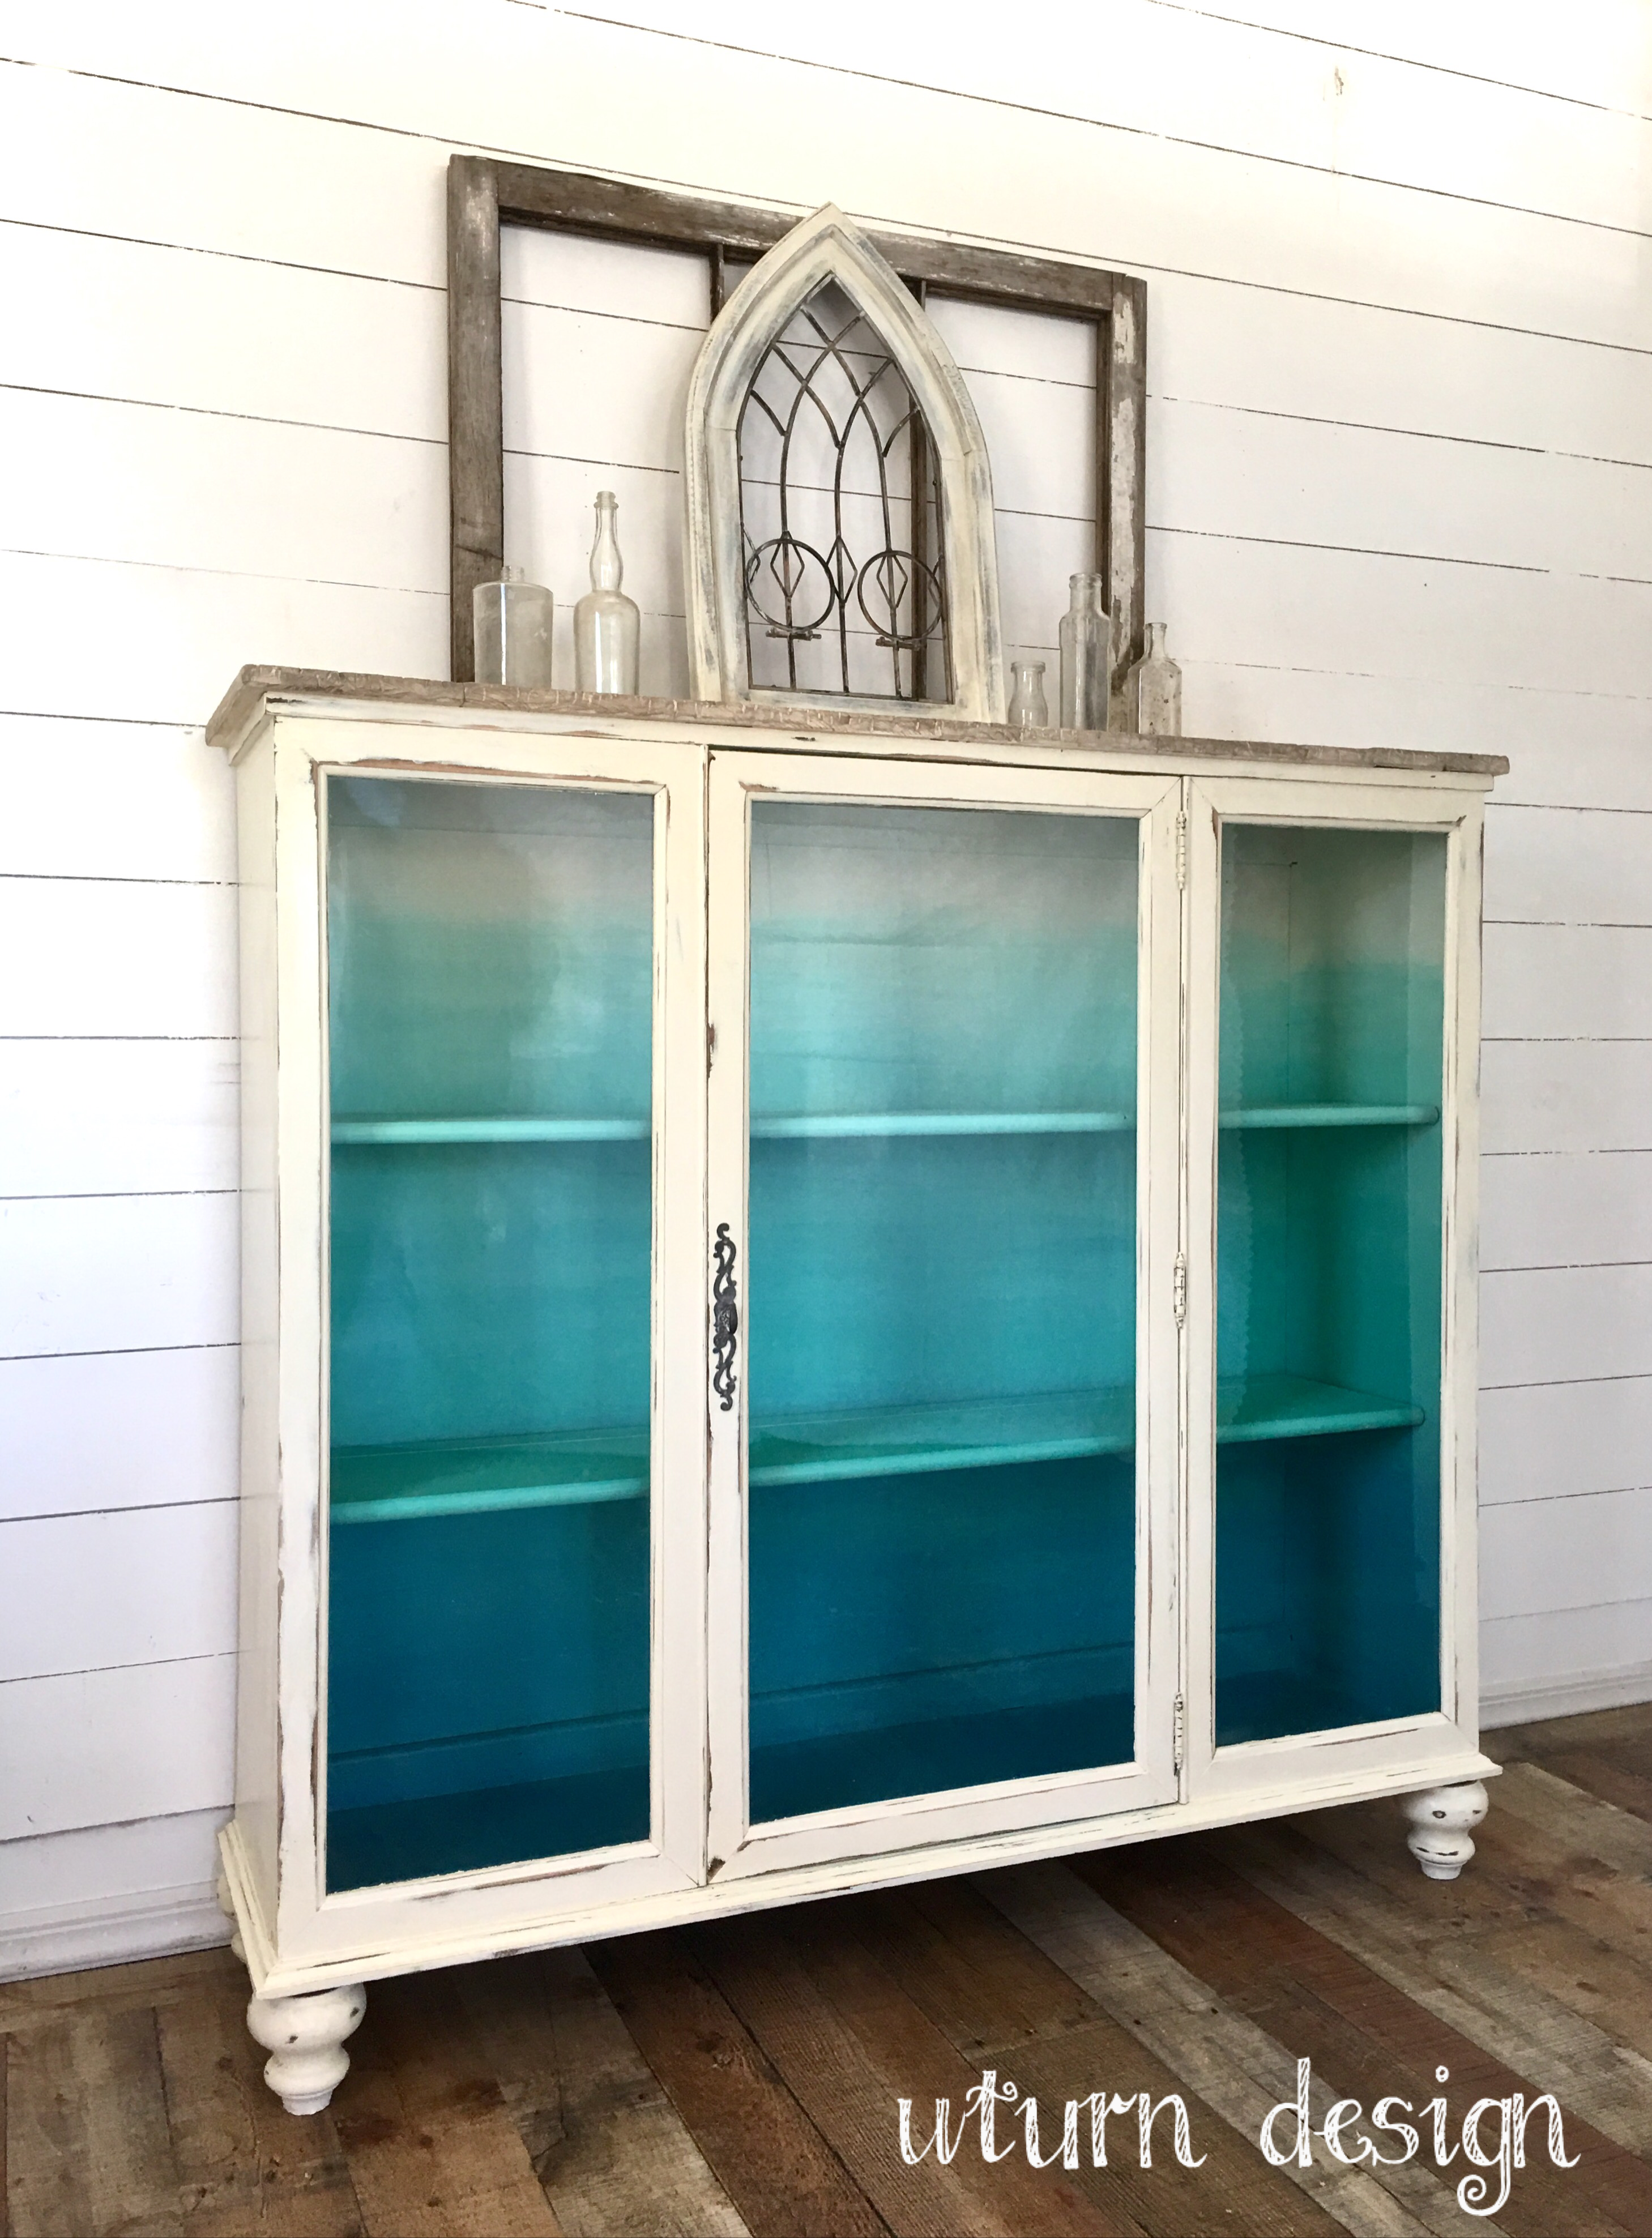 Ombre painted hutch by uturn design dads china cabinet in